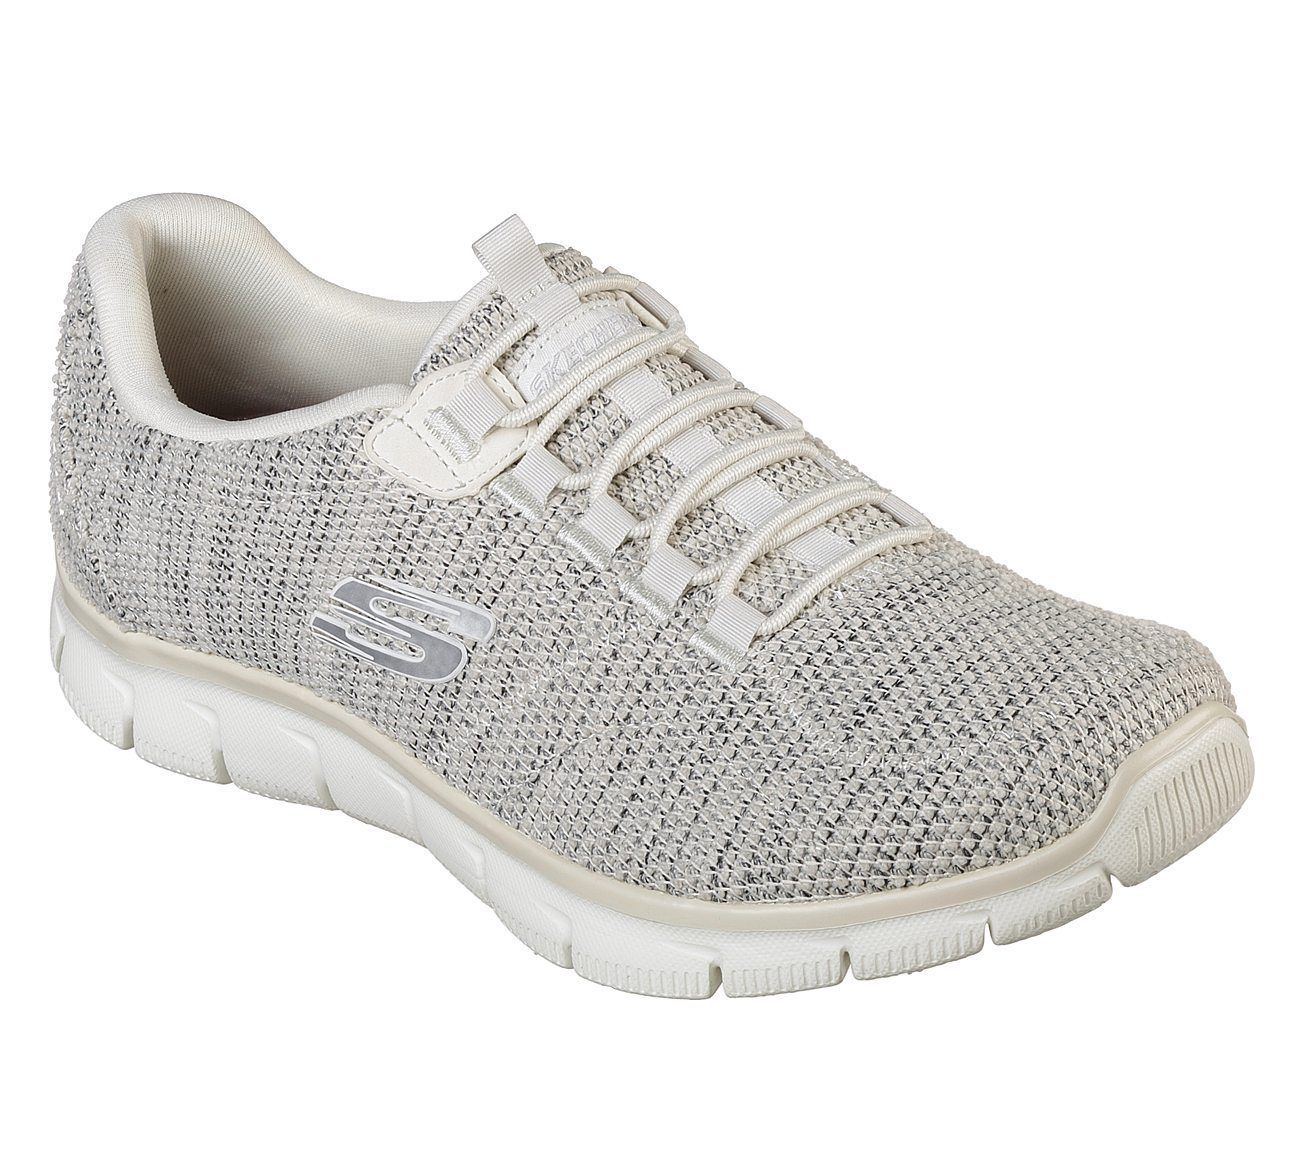 Skechers Shoes: 16 customer reviews and 1267 listings